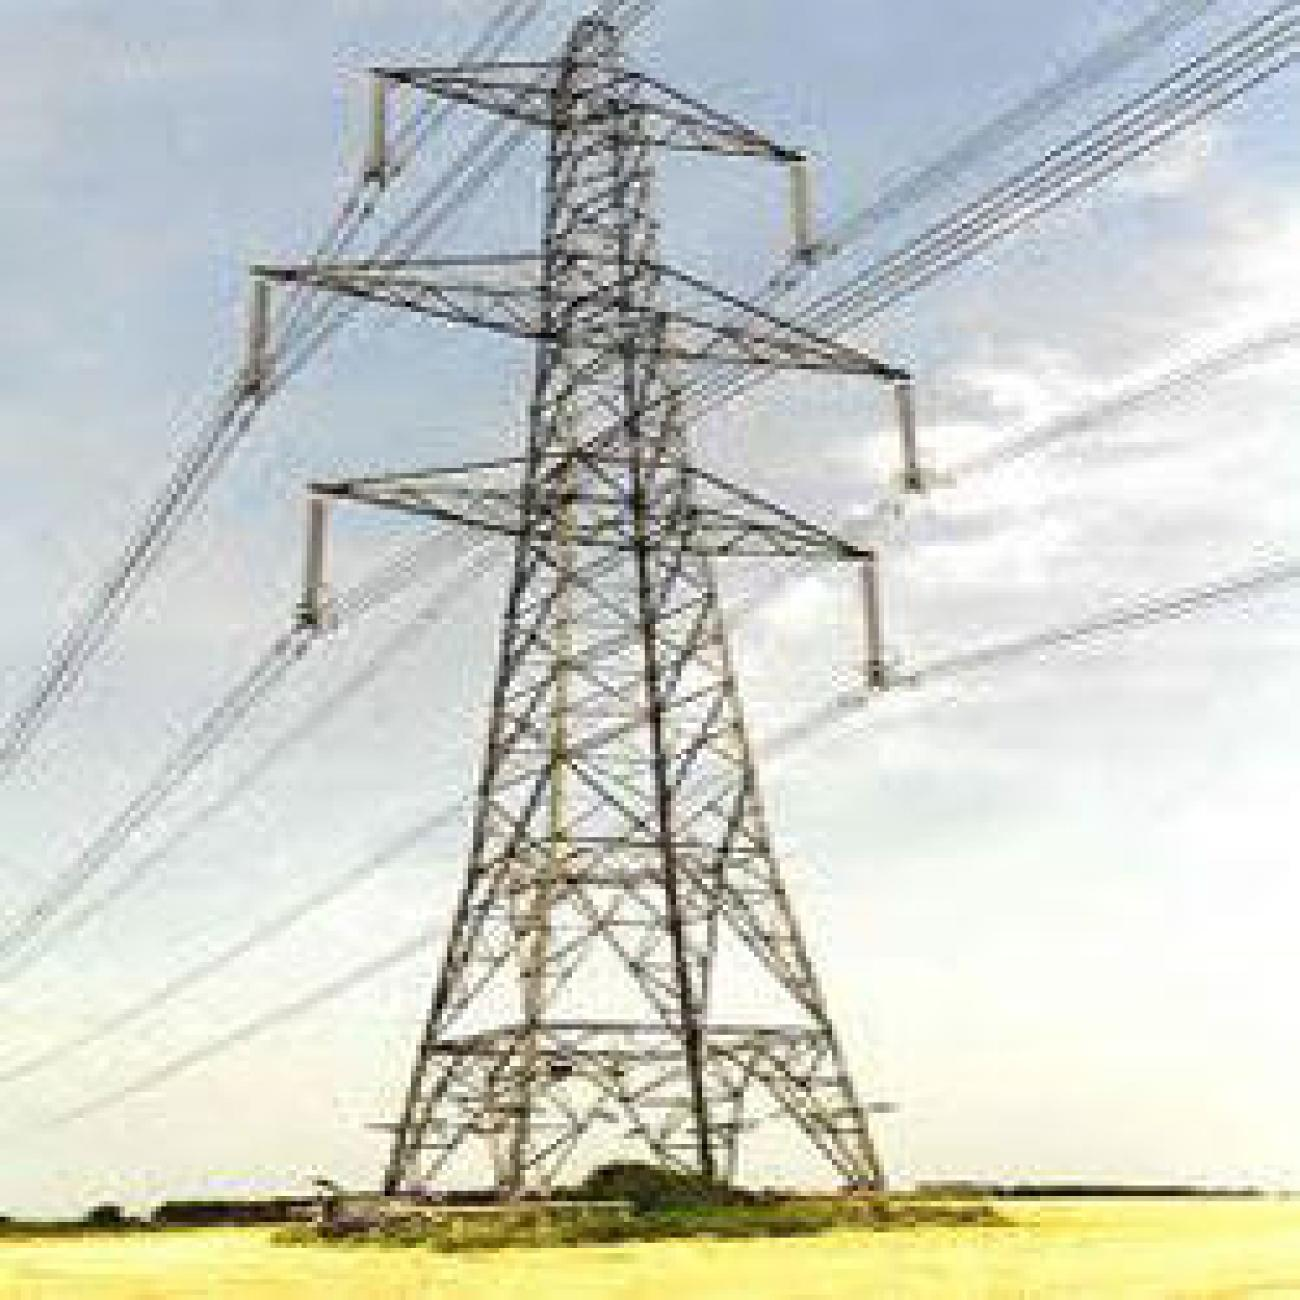 Transmission_lines_Tower_accessoriesew-min